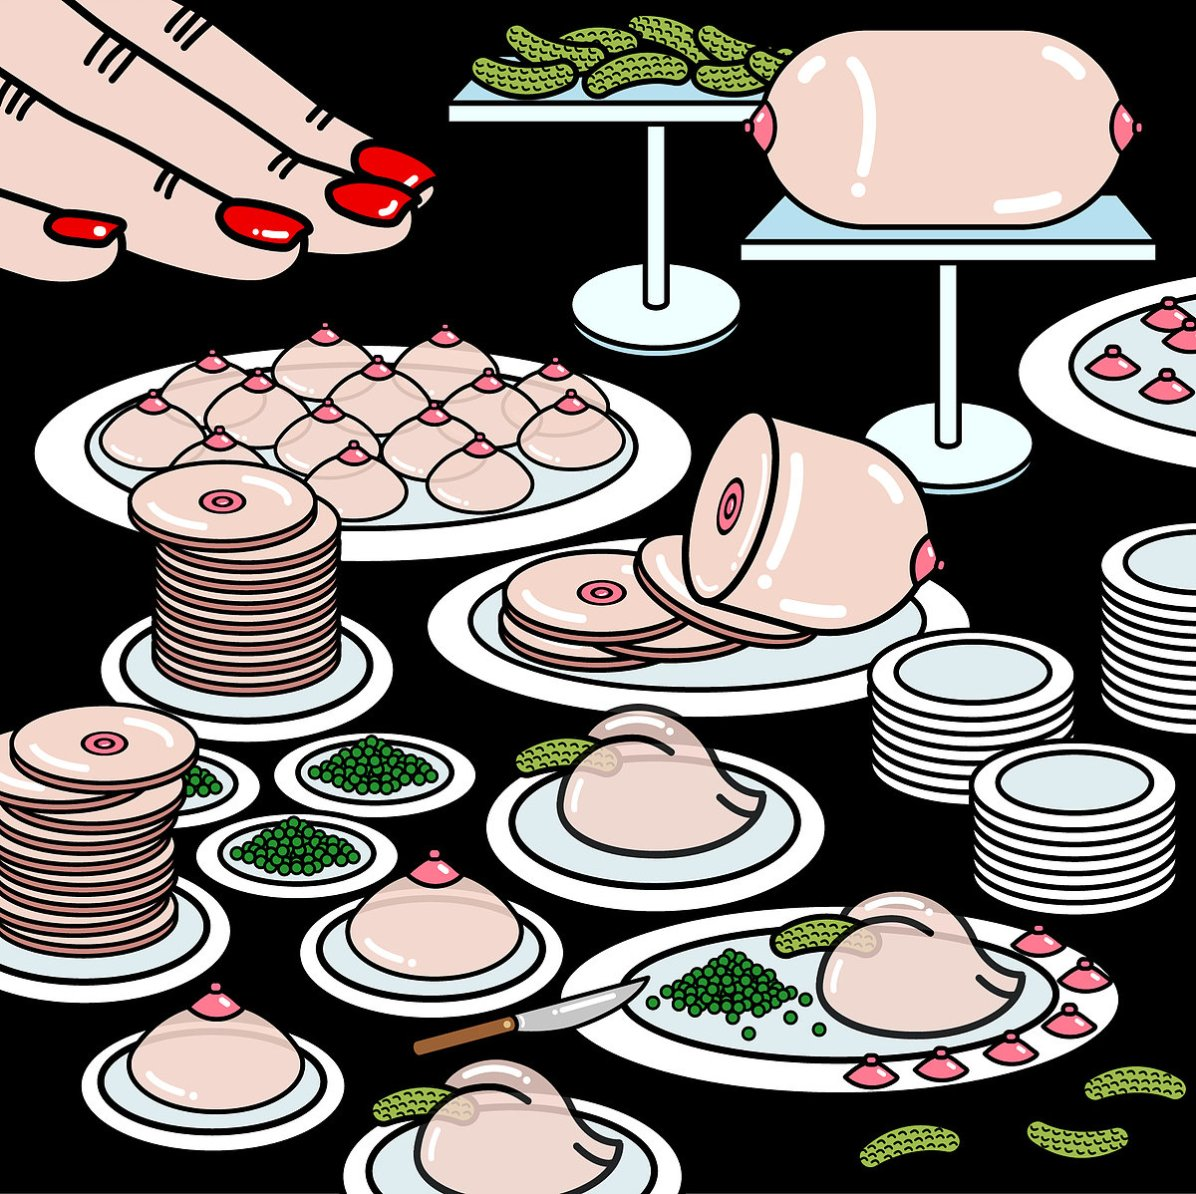 All-you-can-eat buffet will only fill your belly up until you are disgustingly full. It provides for your greed, not for your need